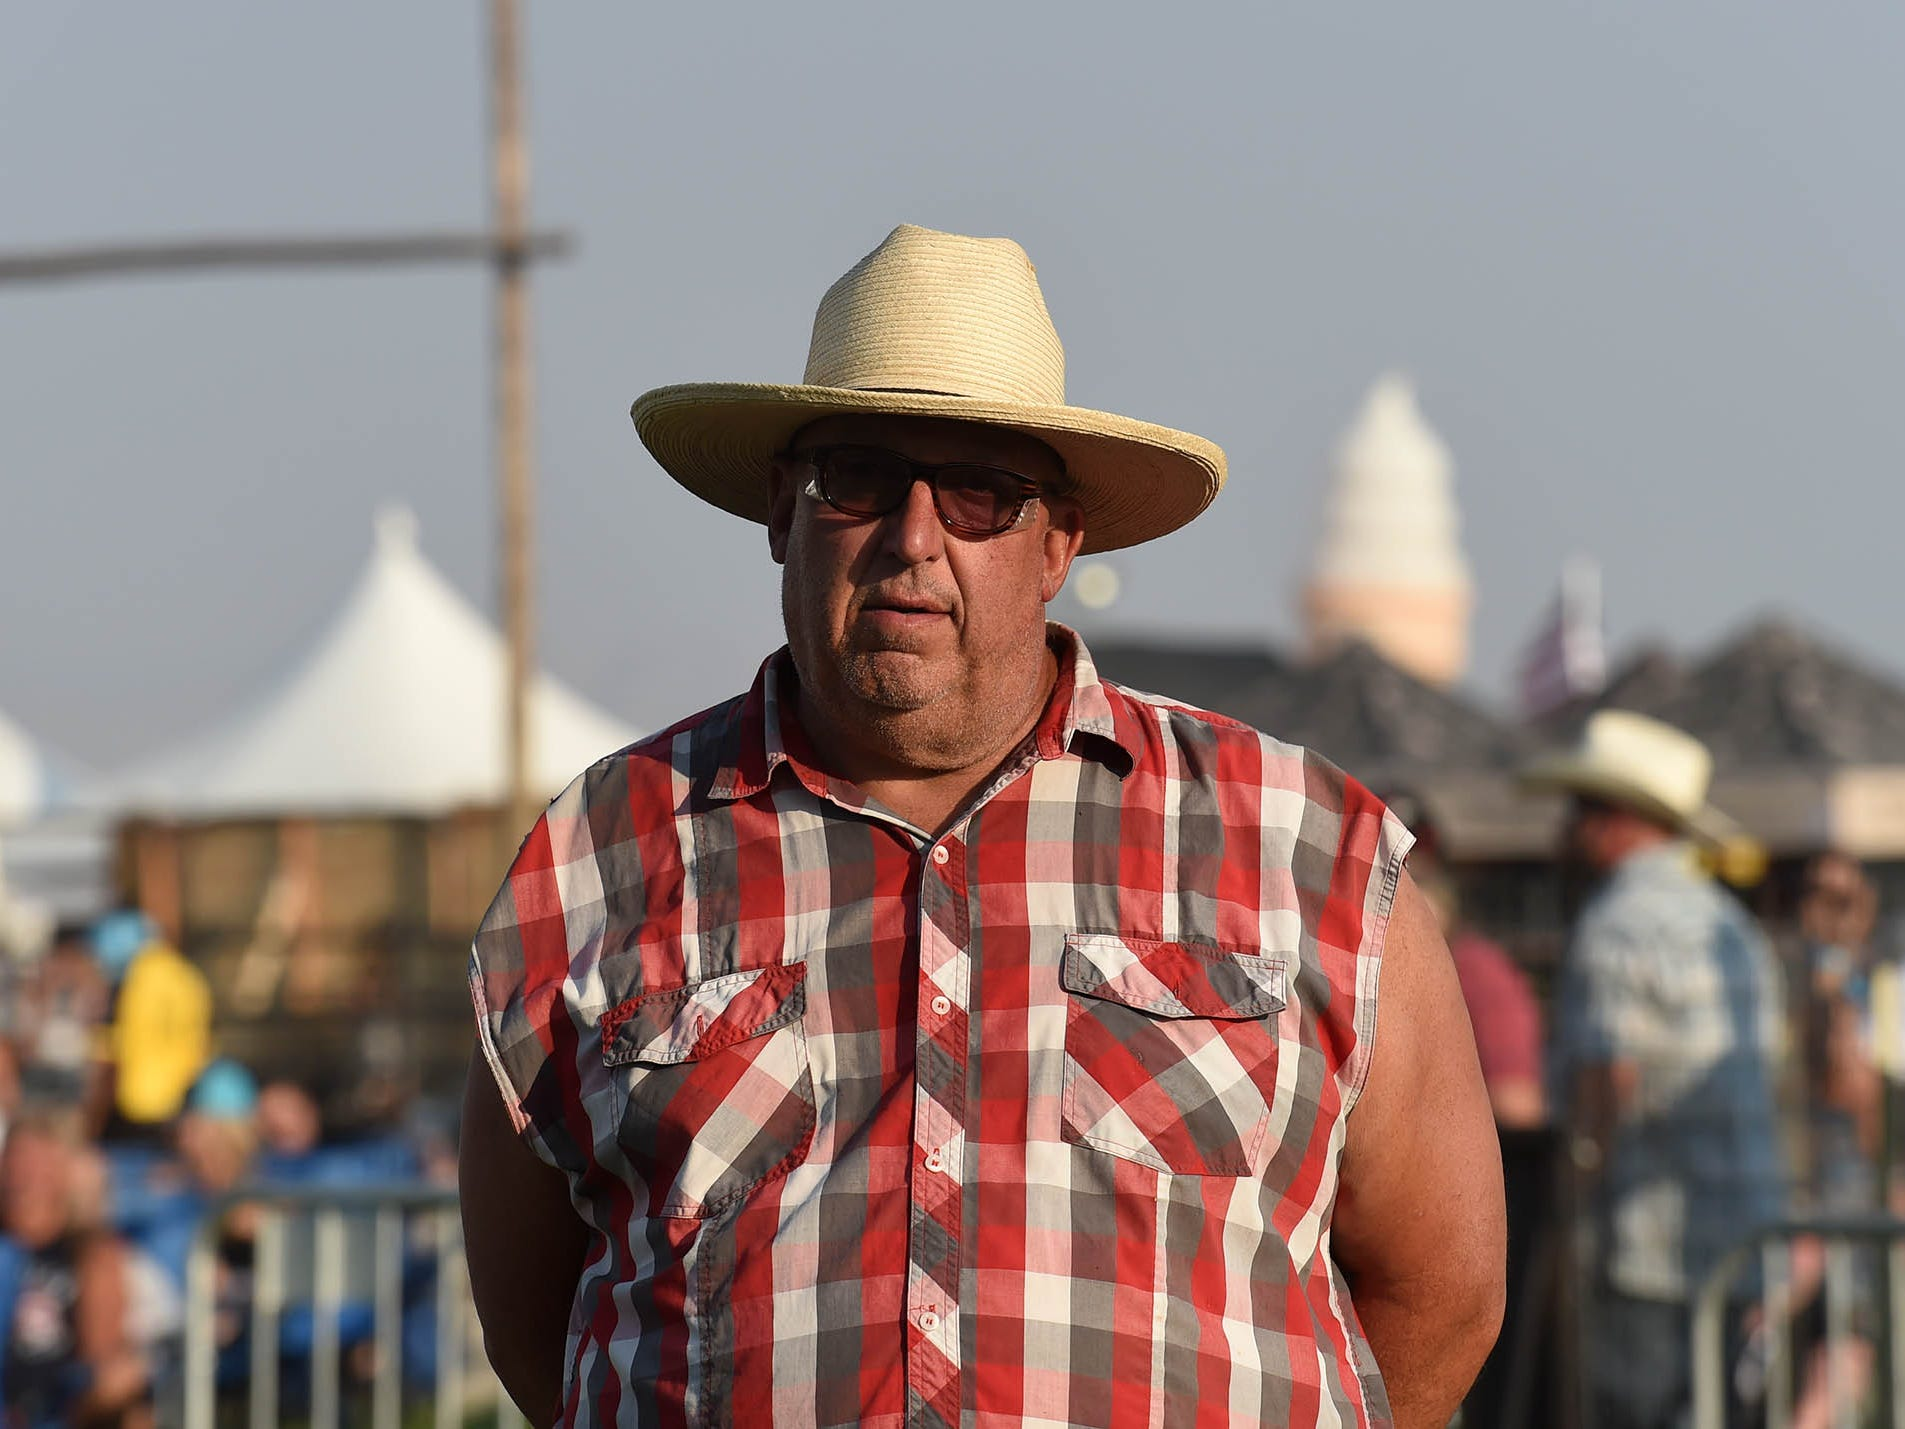 The fun continues on the final day of Night in the Country, where thousands of country fans gathered at the country music festival in Yerington, Nevada on July 28, 2018.